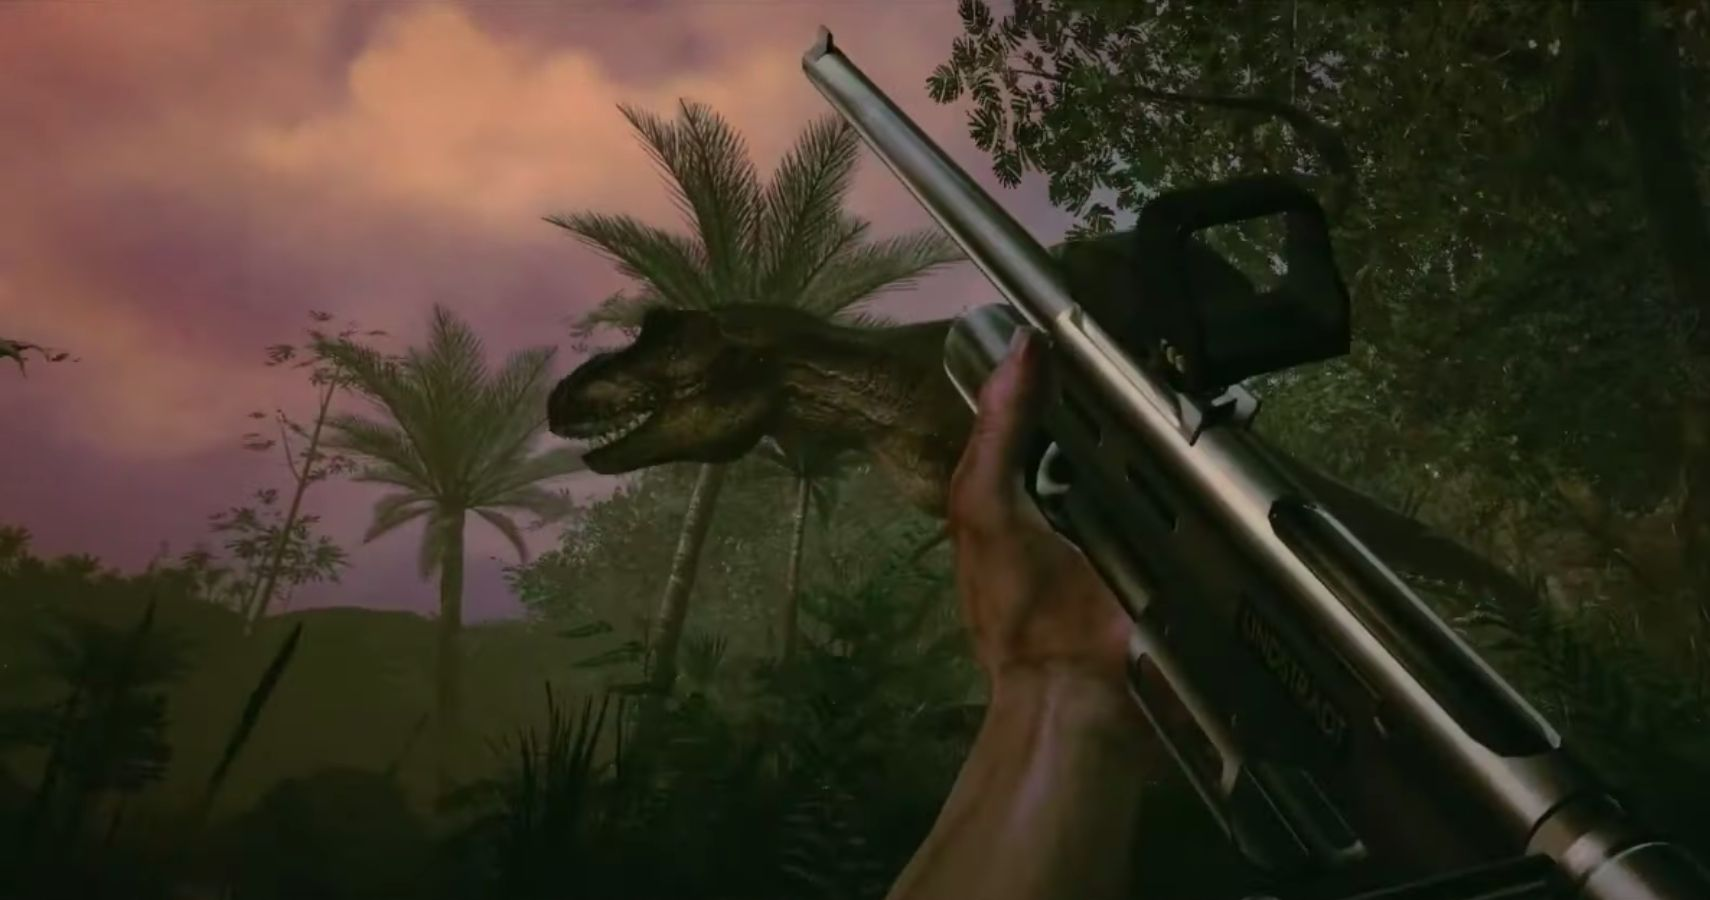 Jurassic park game mod for half-life 2 download casino buys gpa